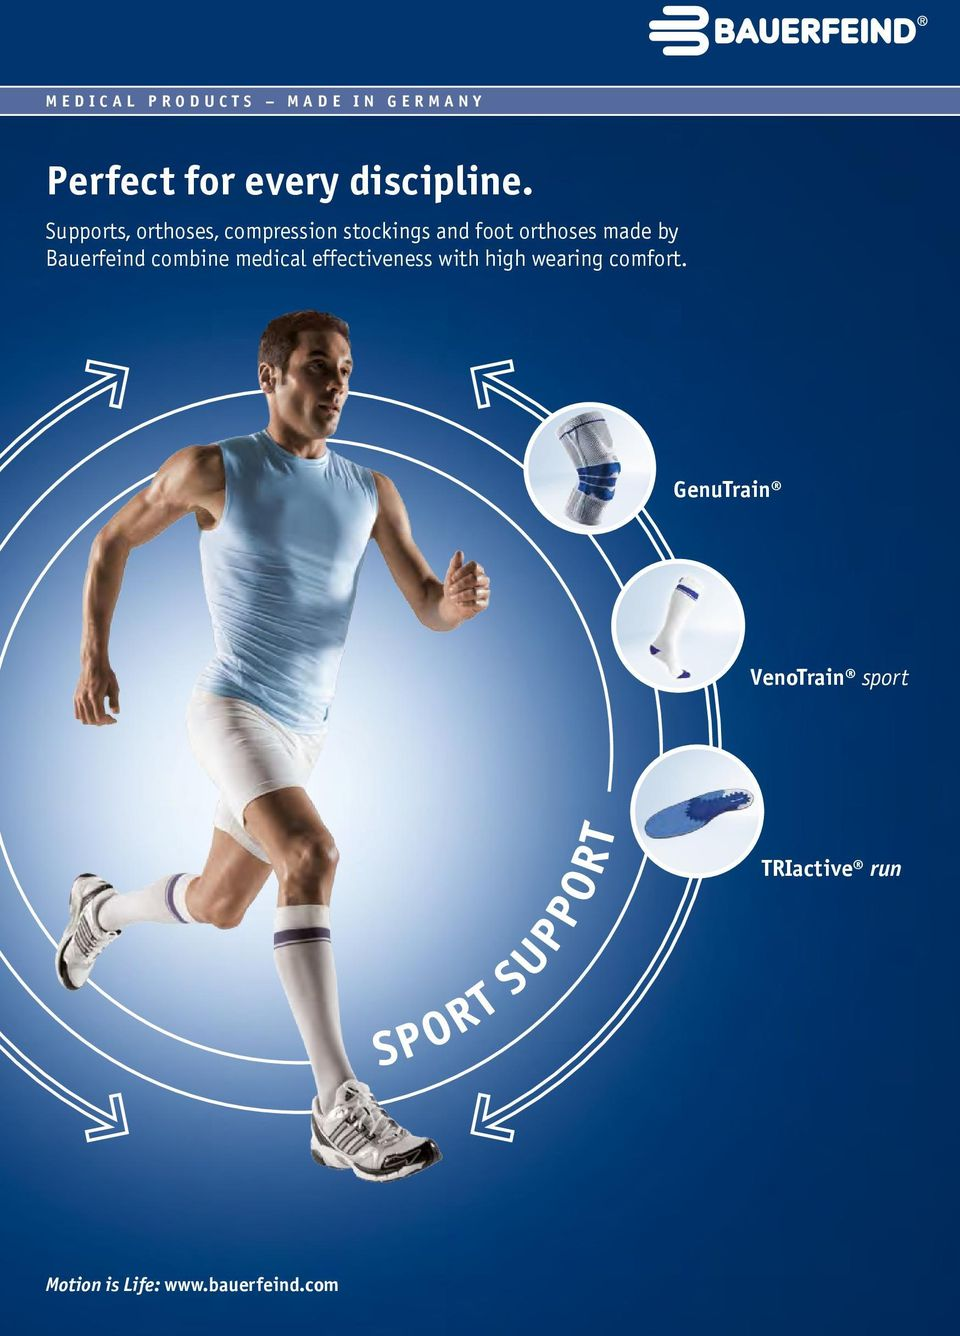 Bauerfeind combine medical effectiveness with high wearing comfort.